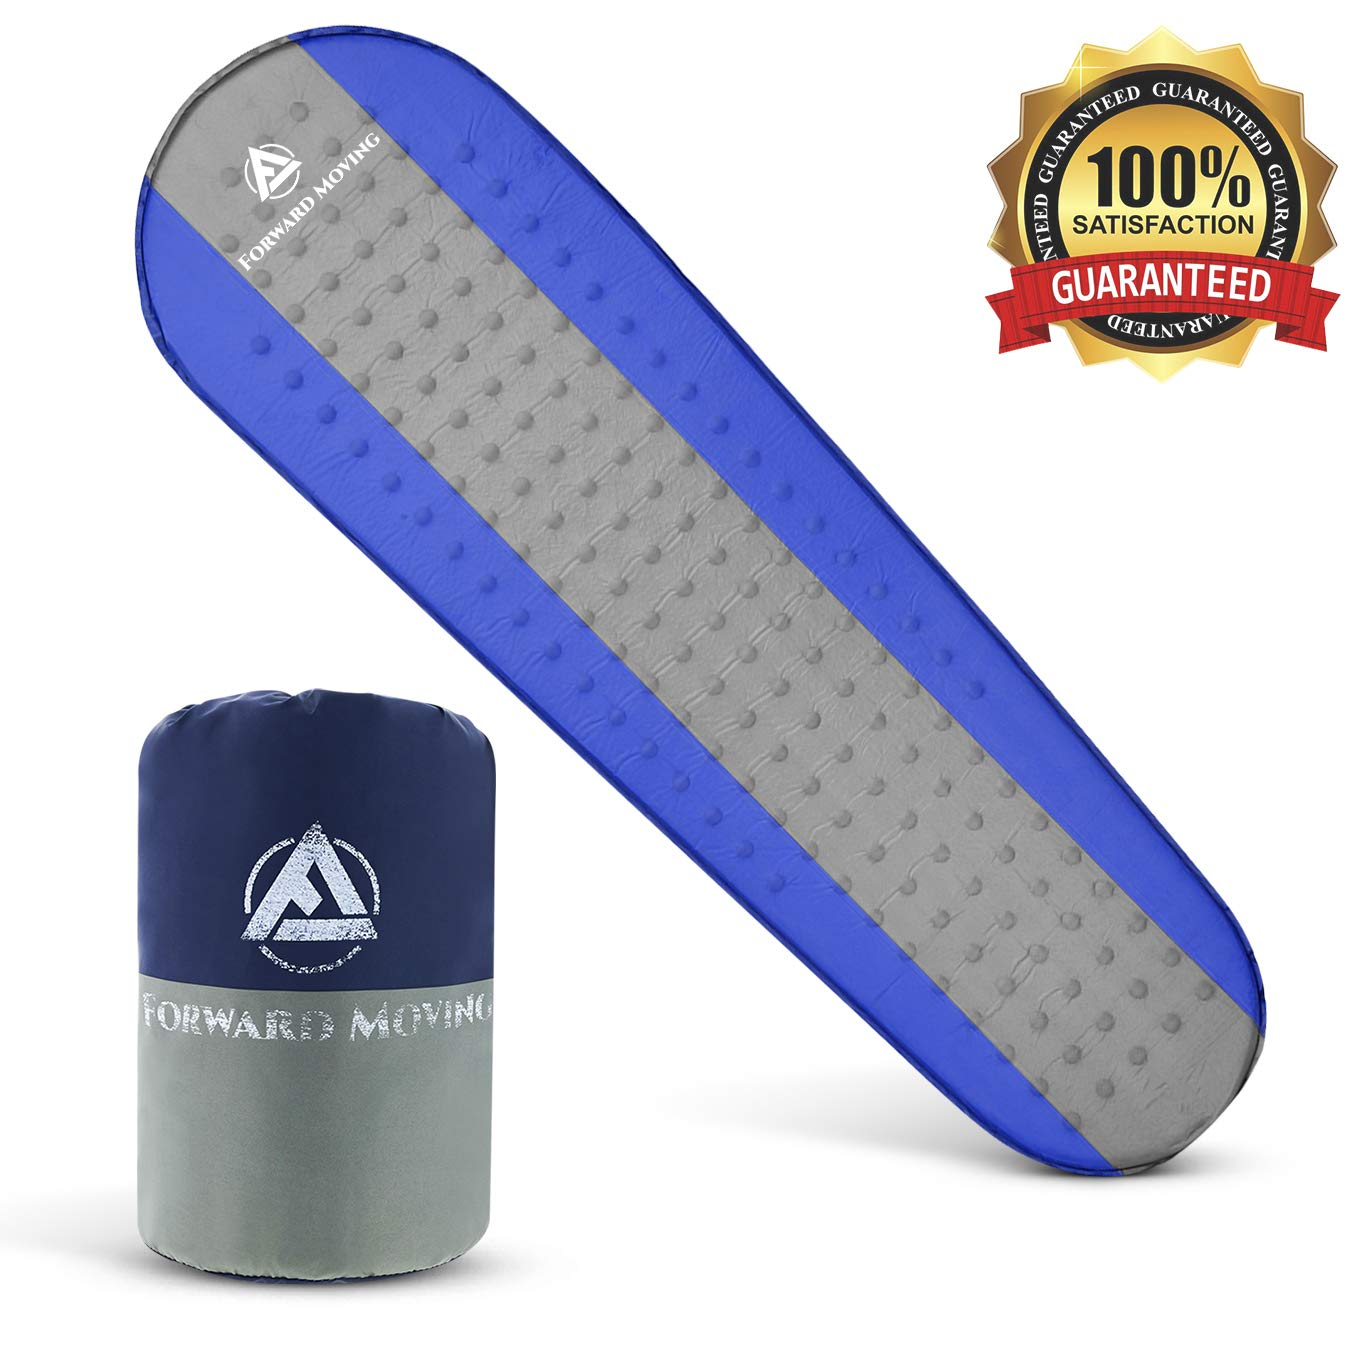 Thickness 1.5 Foam Sleeping Pad for Camping Mattress for Kids /& Adults Hiking /& Backpacking Inflates Quickly Forward Moving #1 Premium Sleeping Mat Sleep Comfortably Anywhere